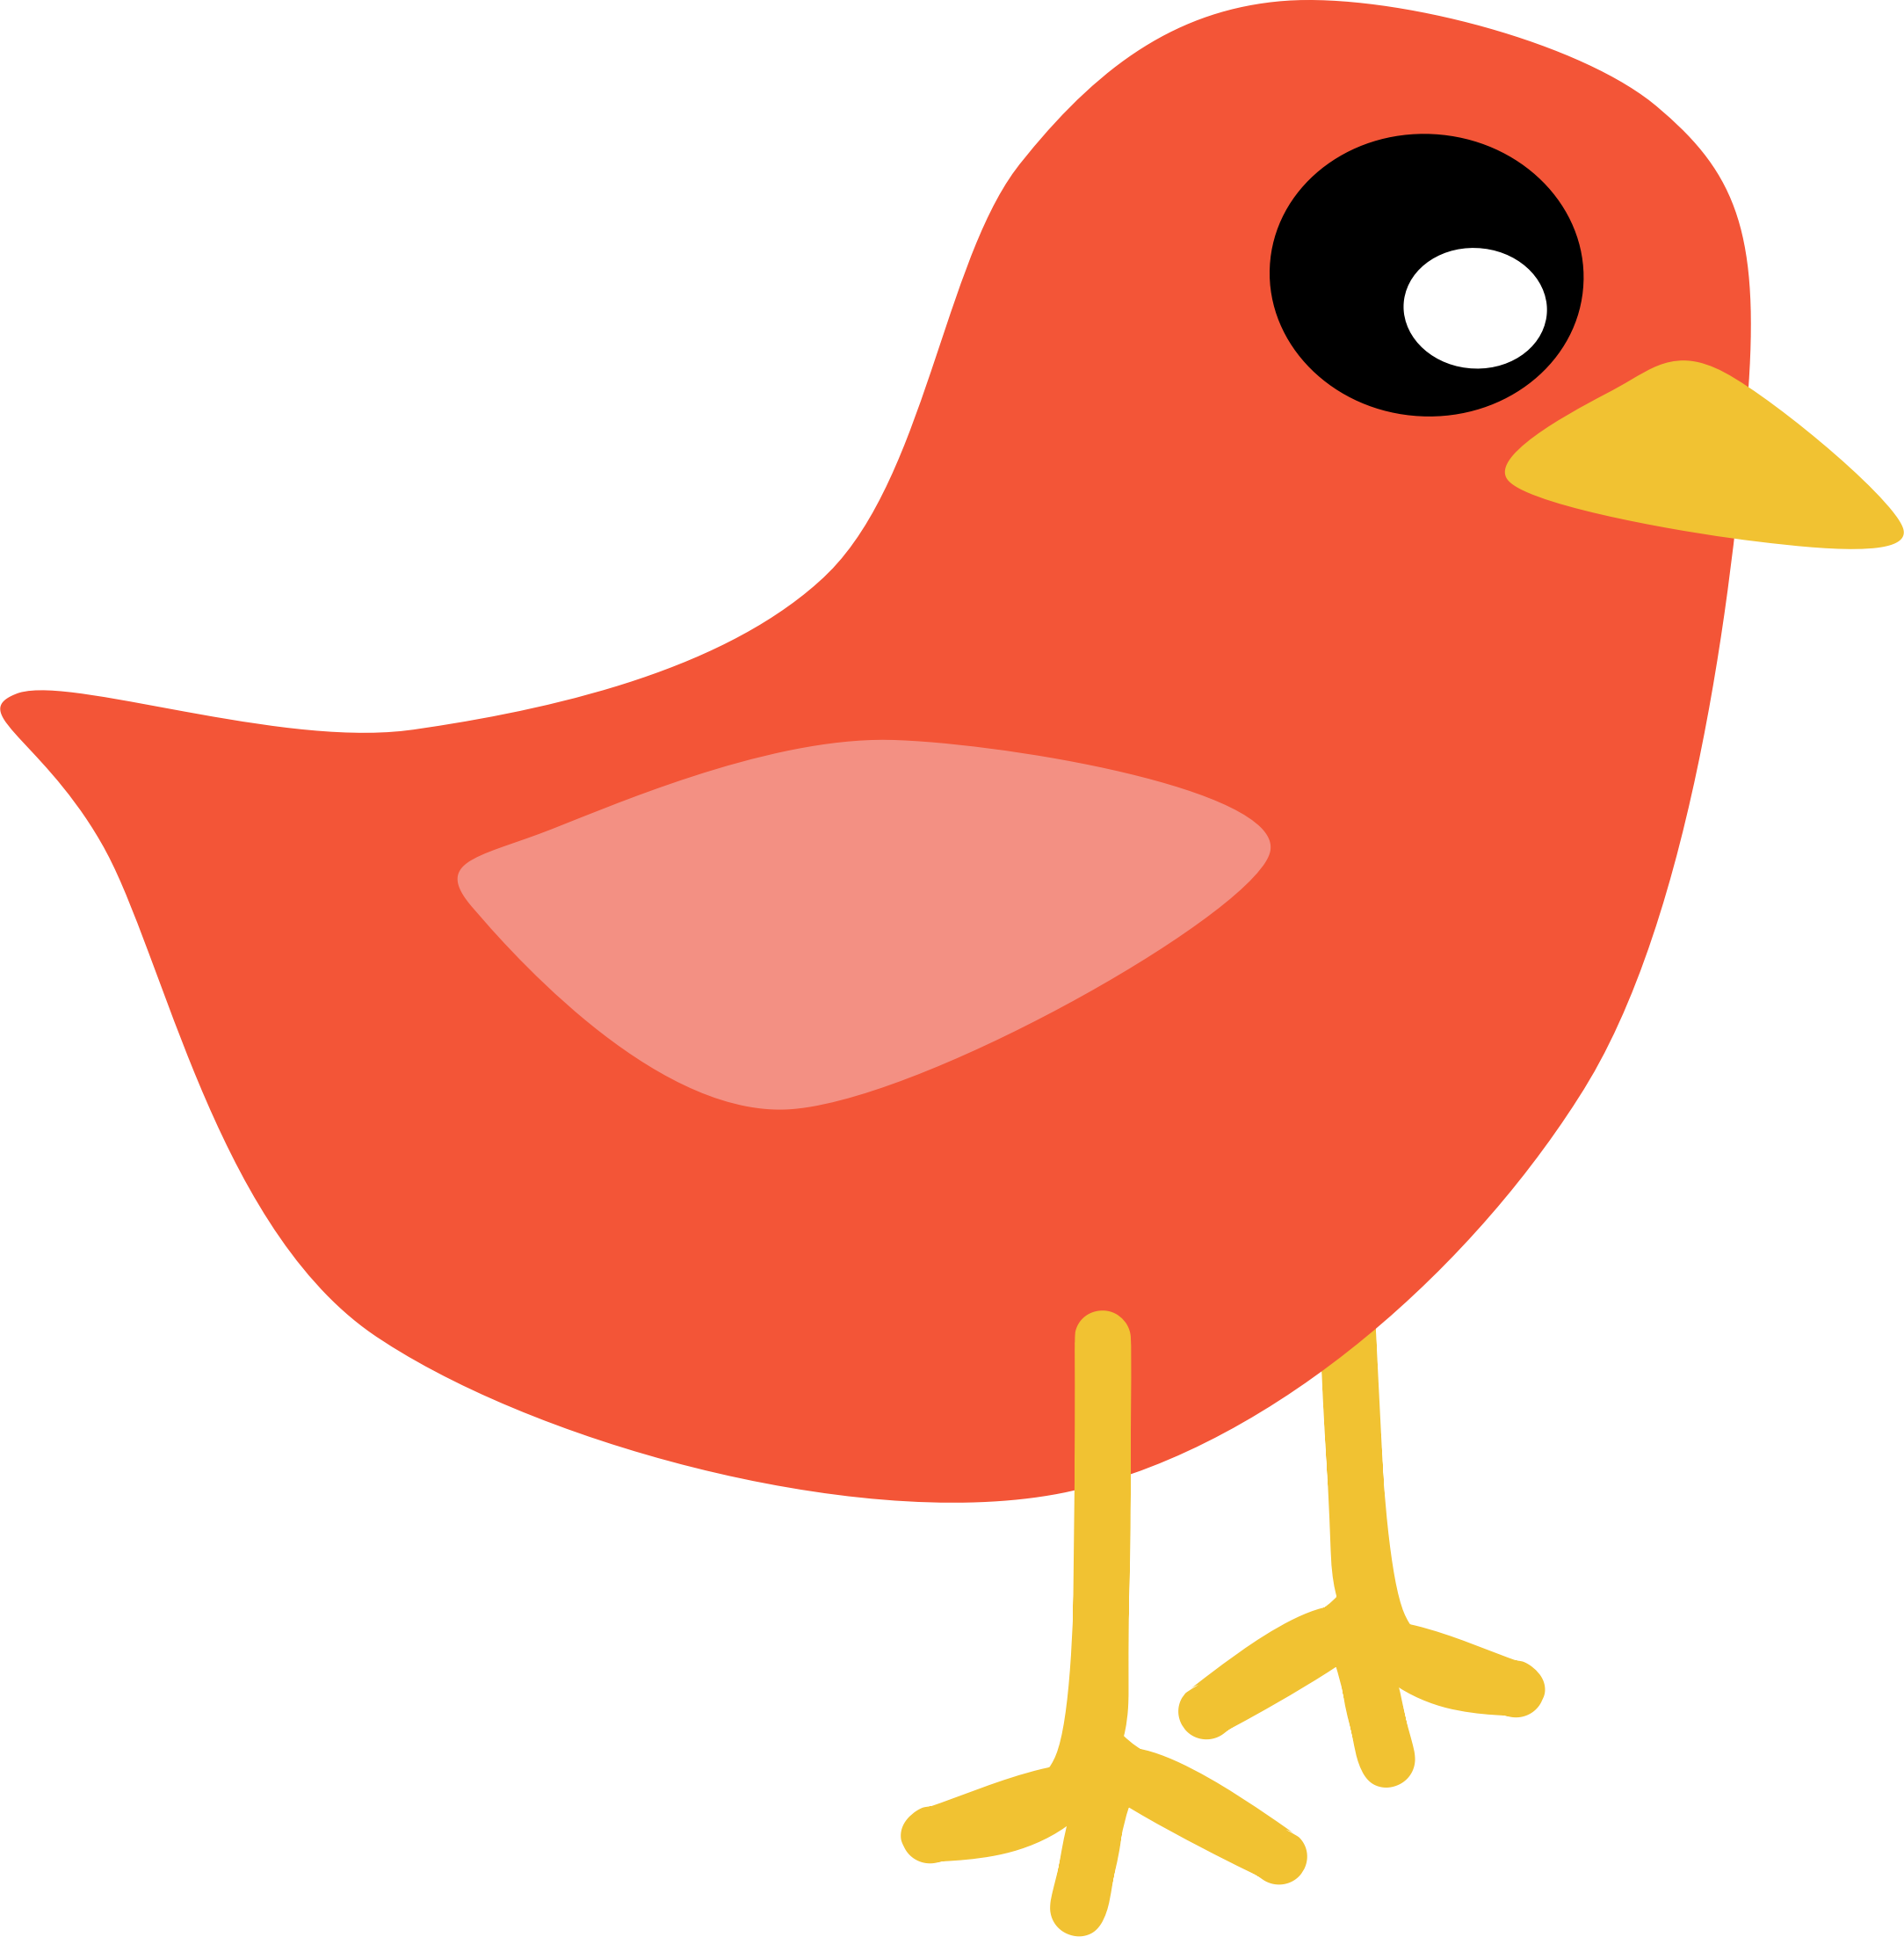 banner freeuse download Free Transparent Bird Cliparts